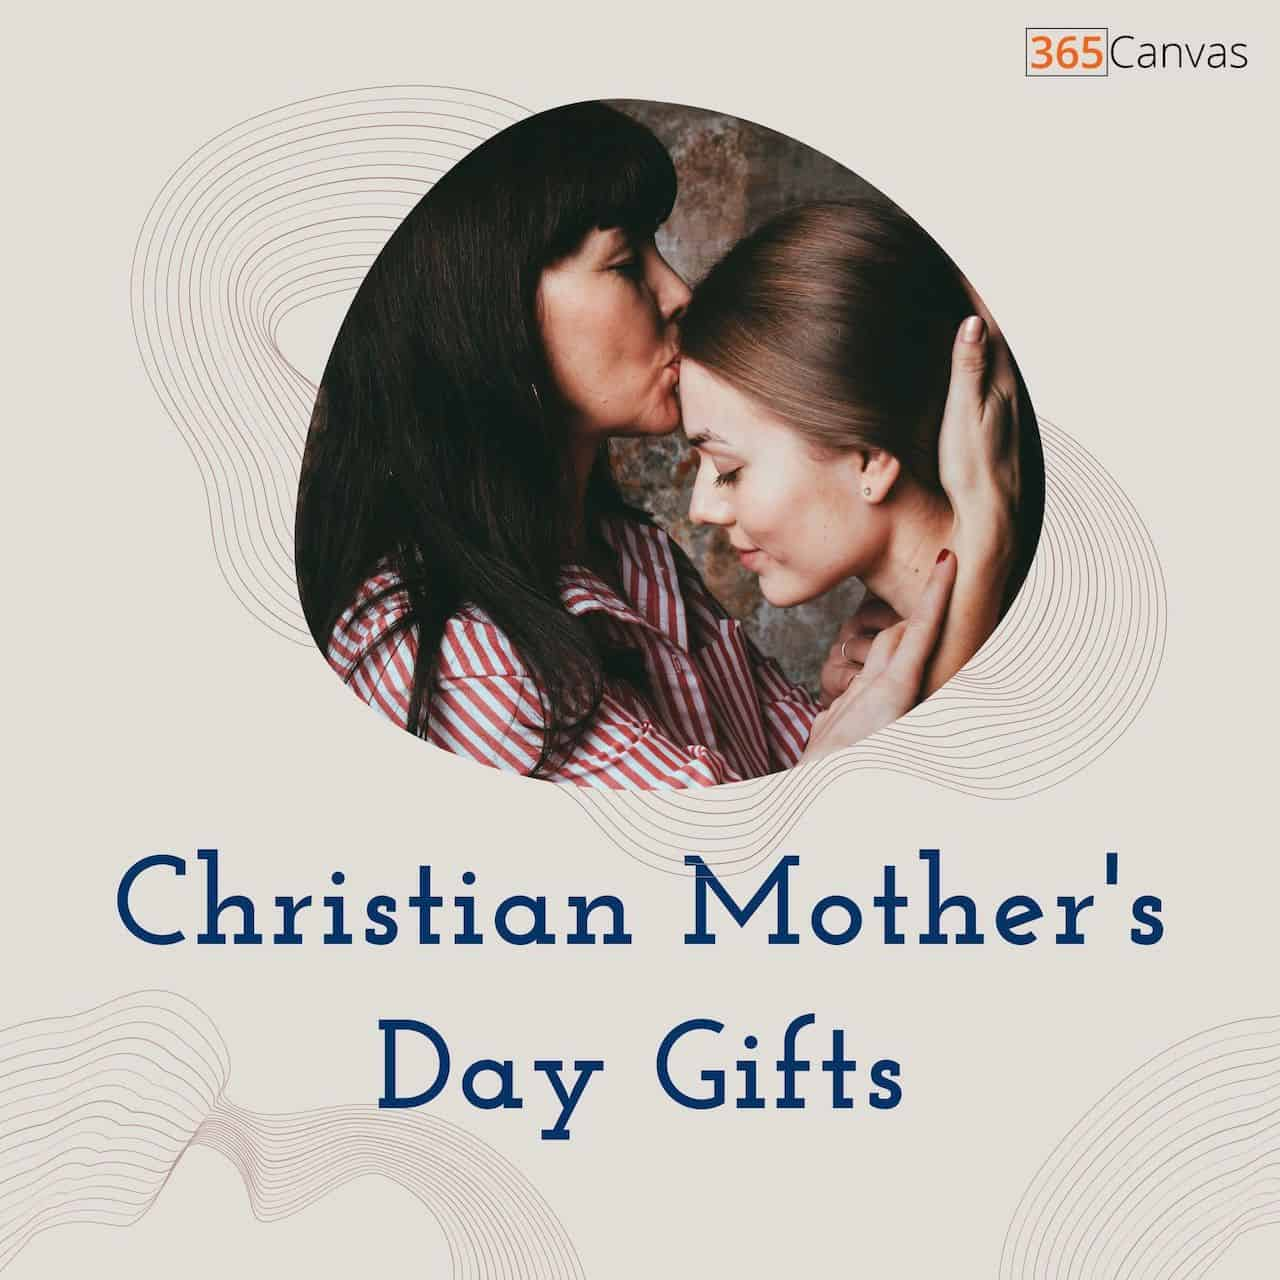 20 Christian Mother's Day Gifts For All Religious Moms (2021)